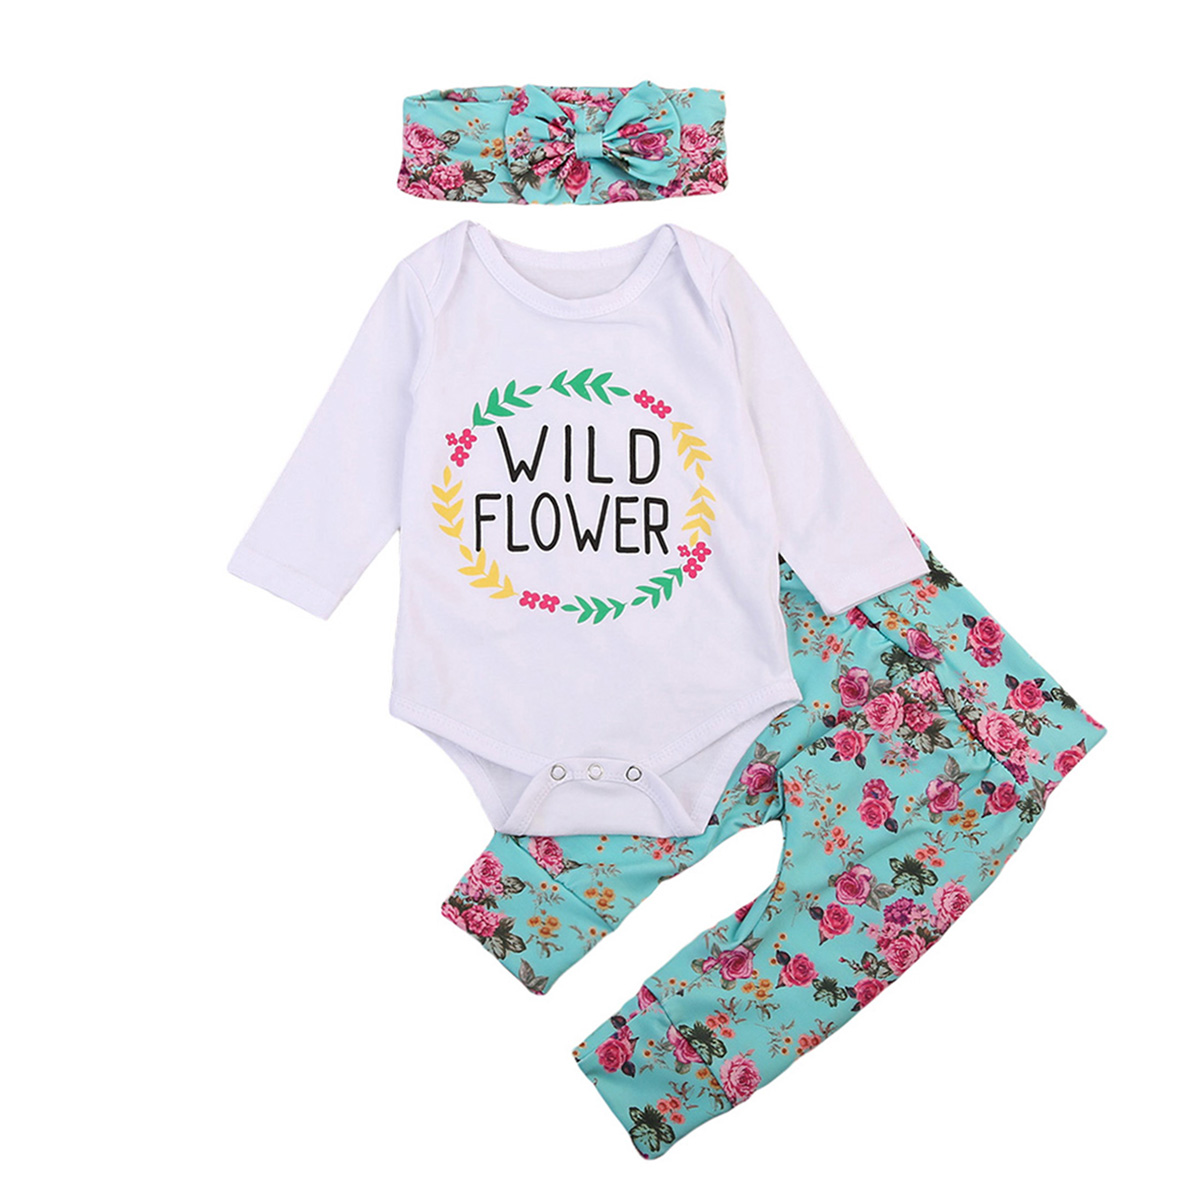 Autumn 2017 Newborn Baby girl Clothes set long Sleeve Cotton letter romper +floral Pant headband Outfit Toddler Kids Clothing